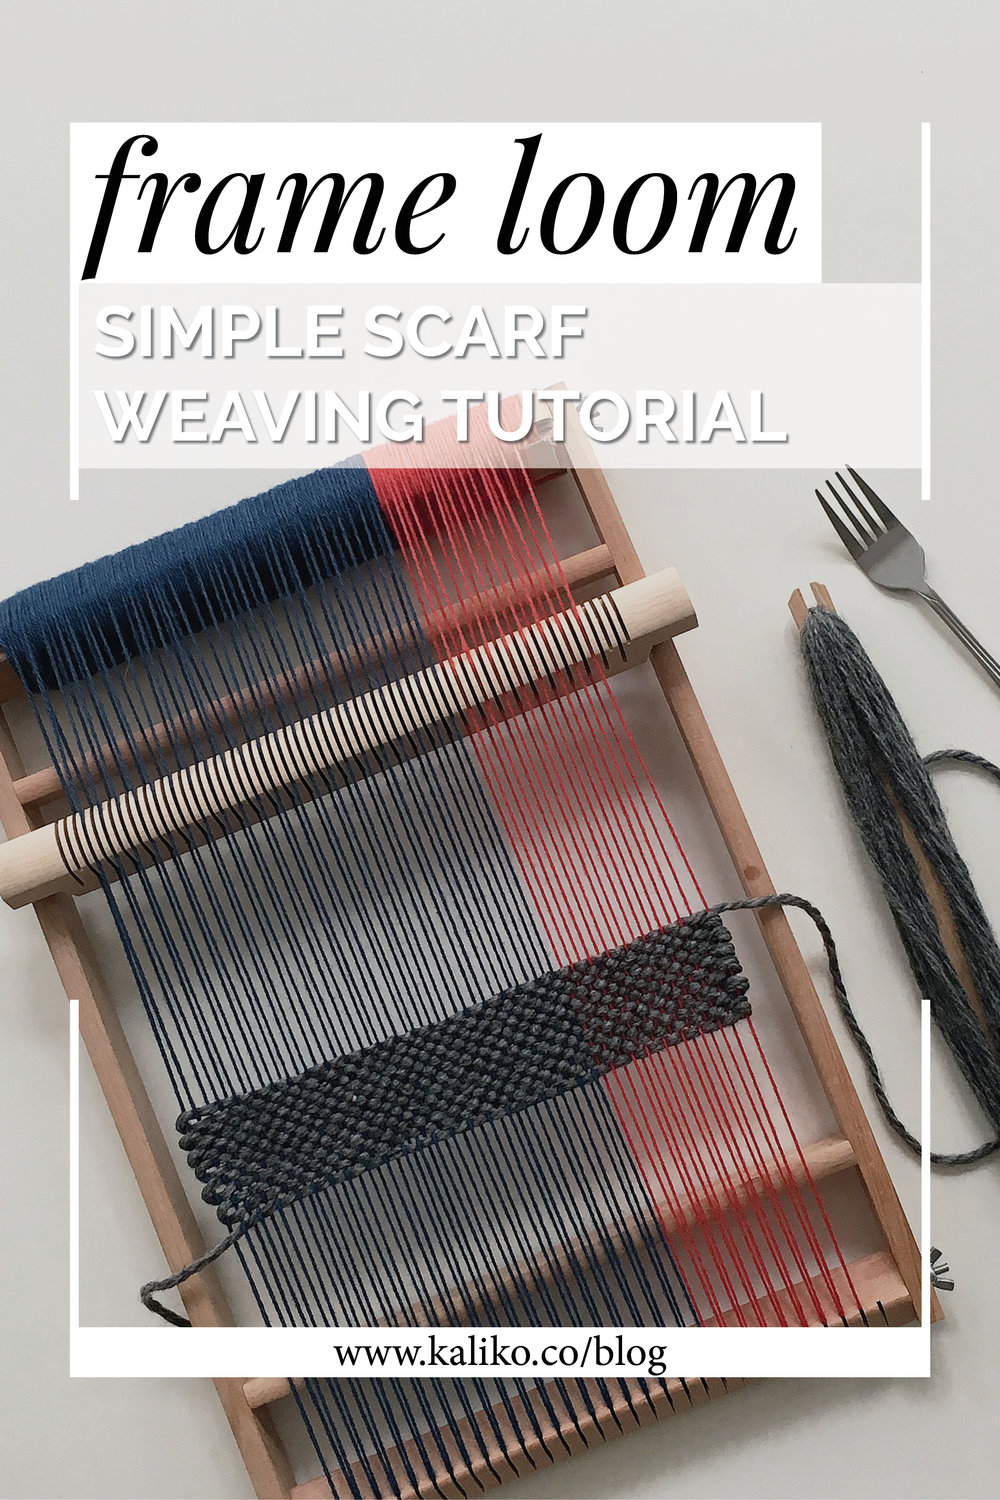 How to weave a scarf on a frame loom - free tutorial video